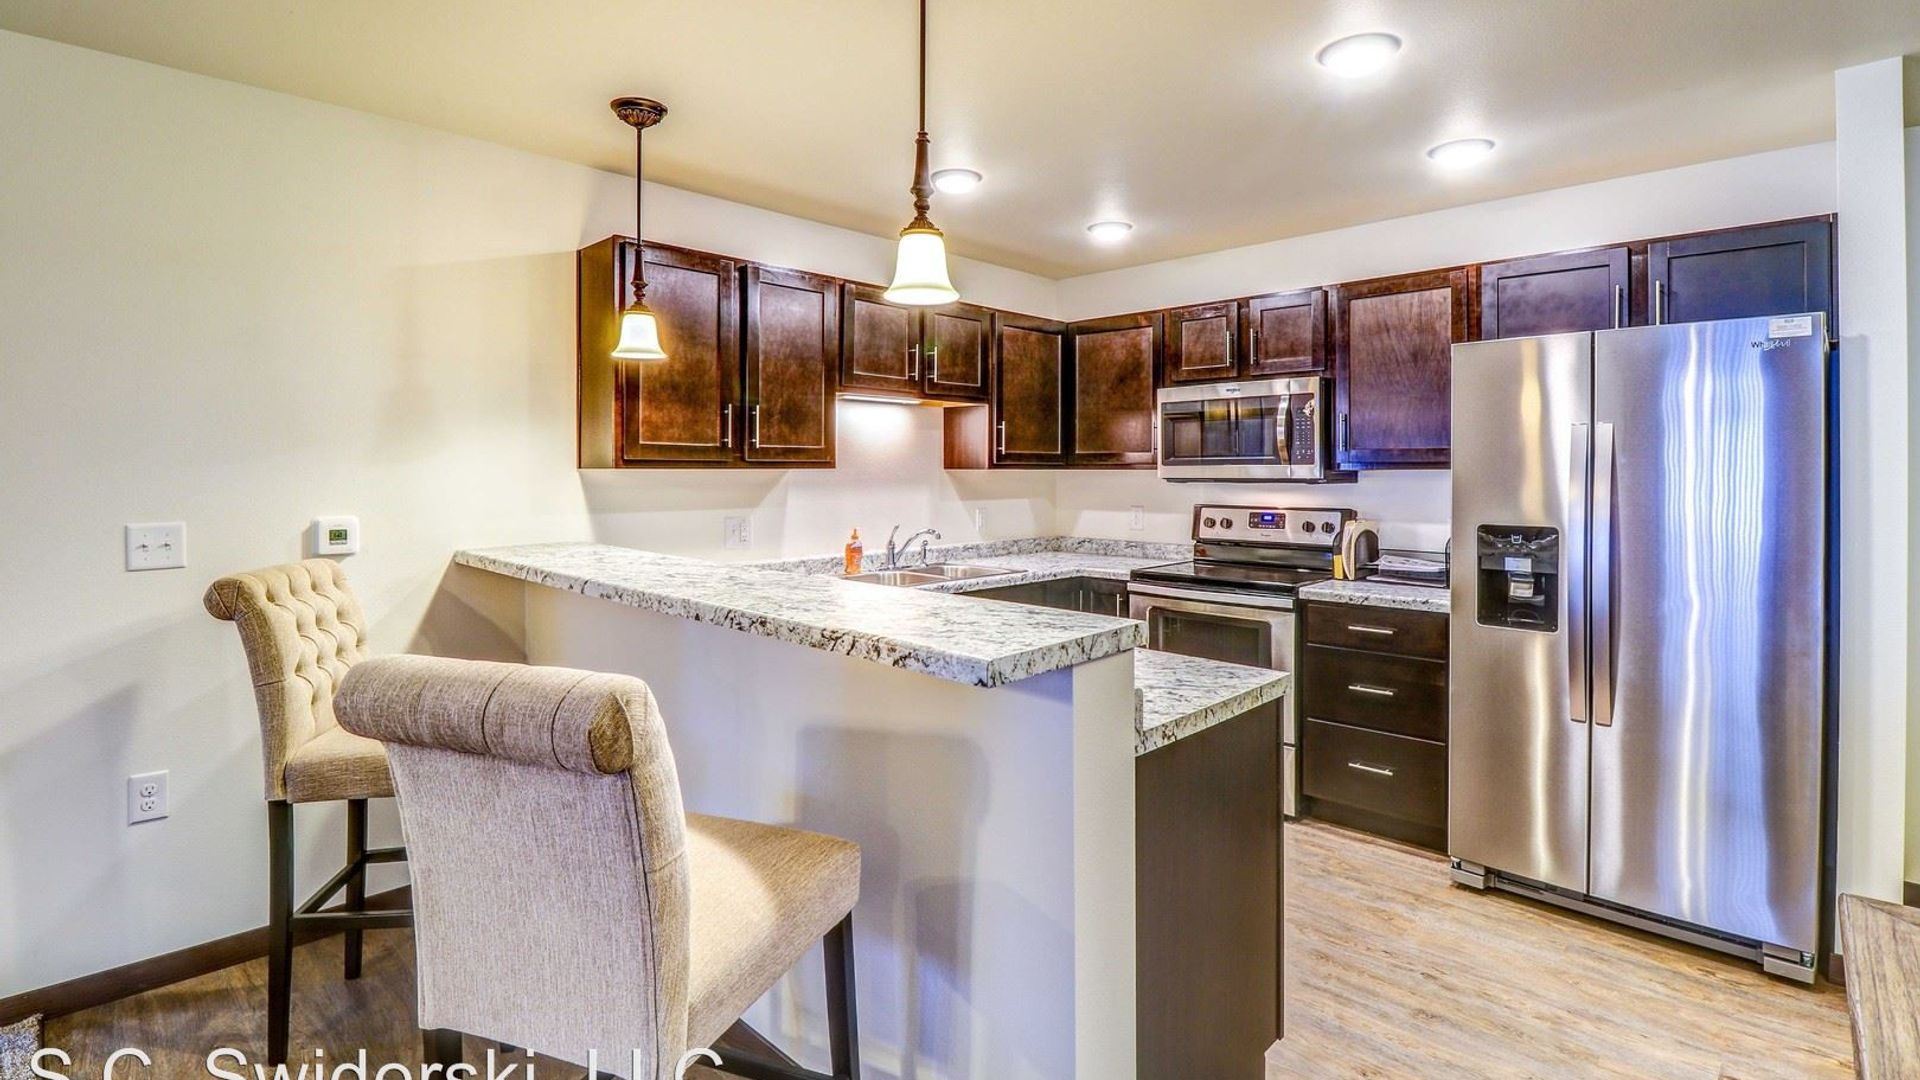 2 bed apartment at Abby Bank, Highway 52 Parkway, Wausau ...